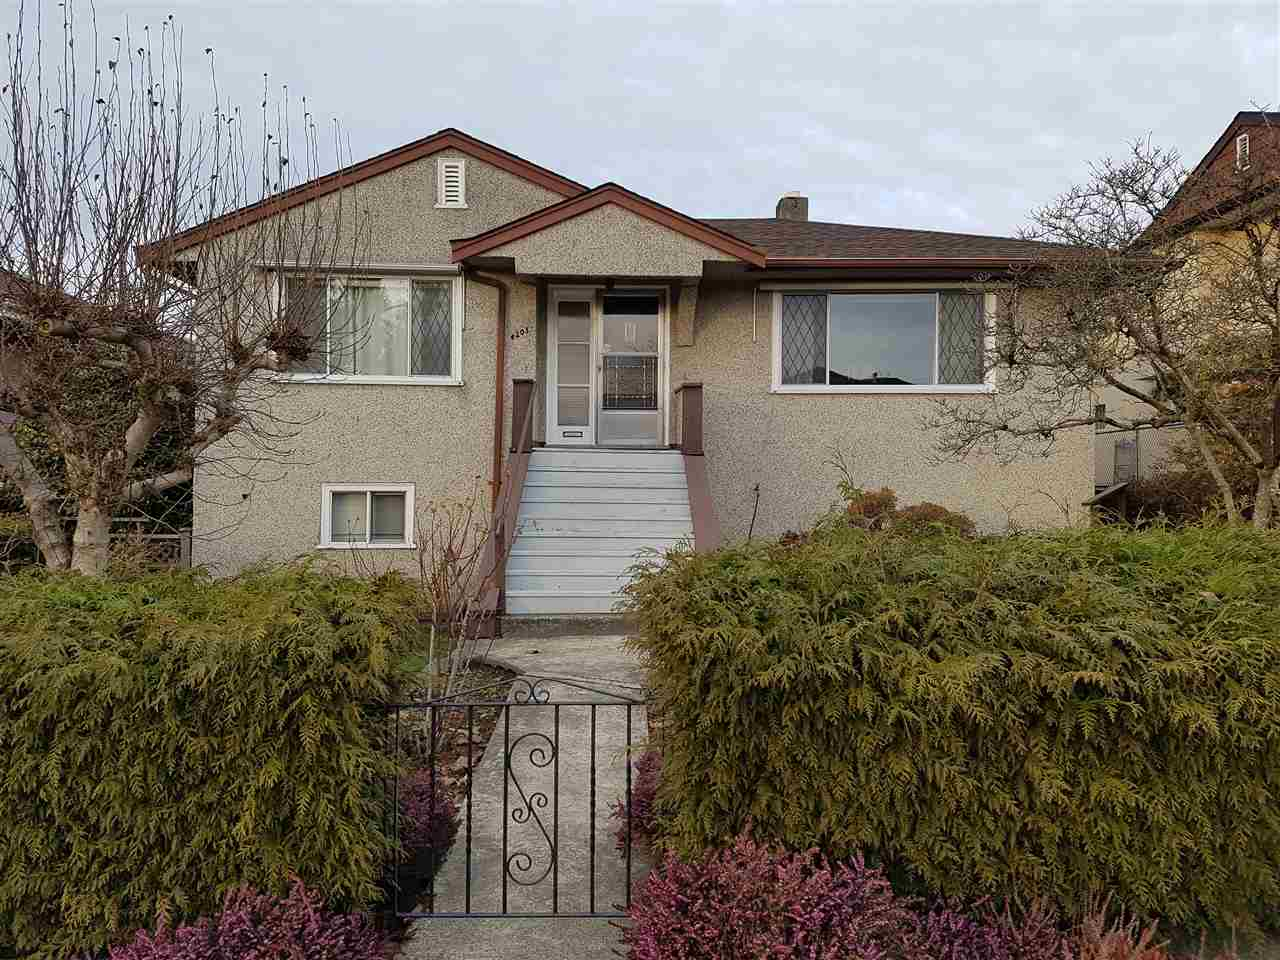 Main Photo: 4203 KITCHENER Street in Burnaby: Willingdon Heights House for sale (Burnaby North)  : MLS® # R2136045